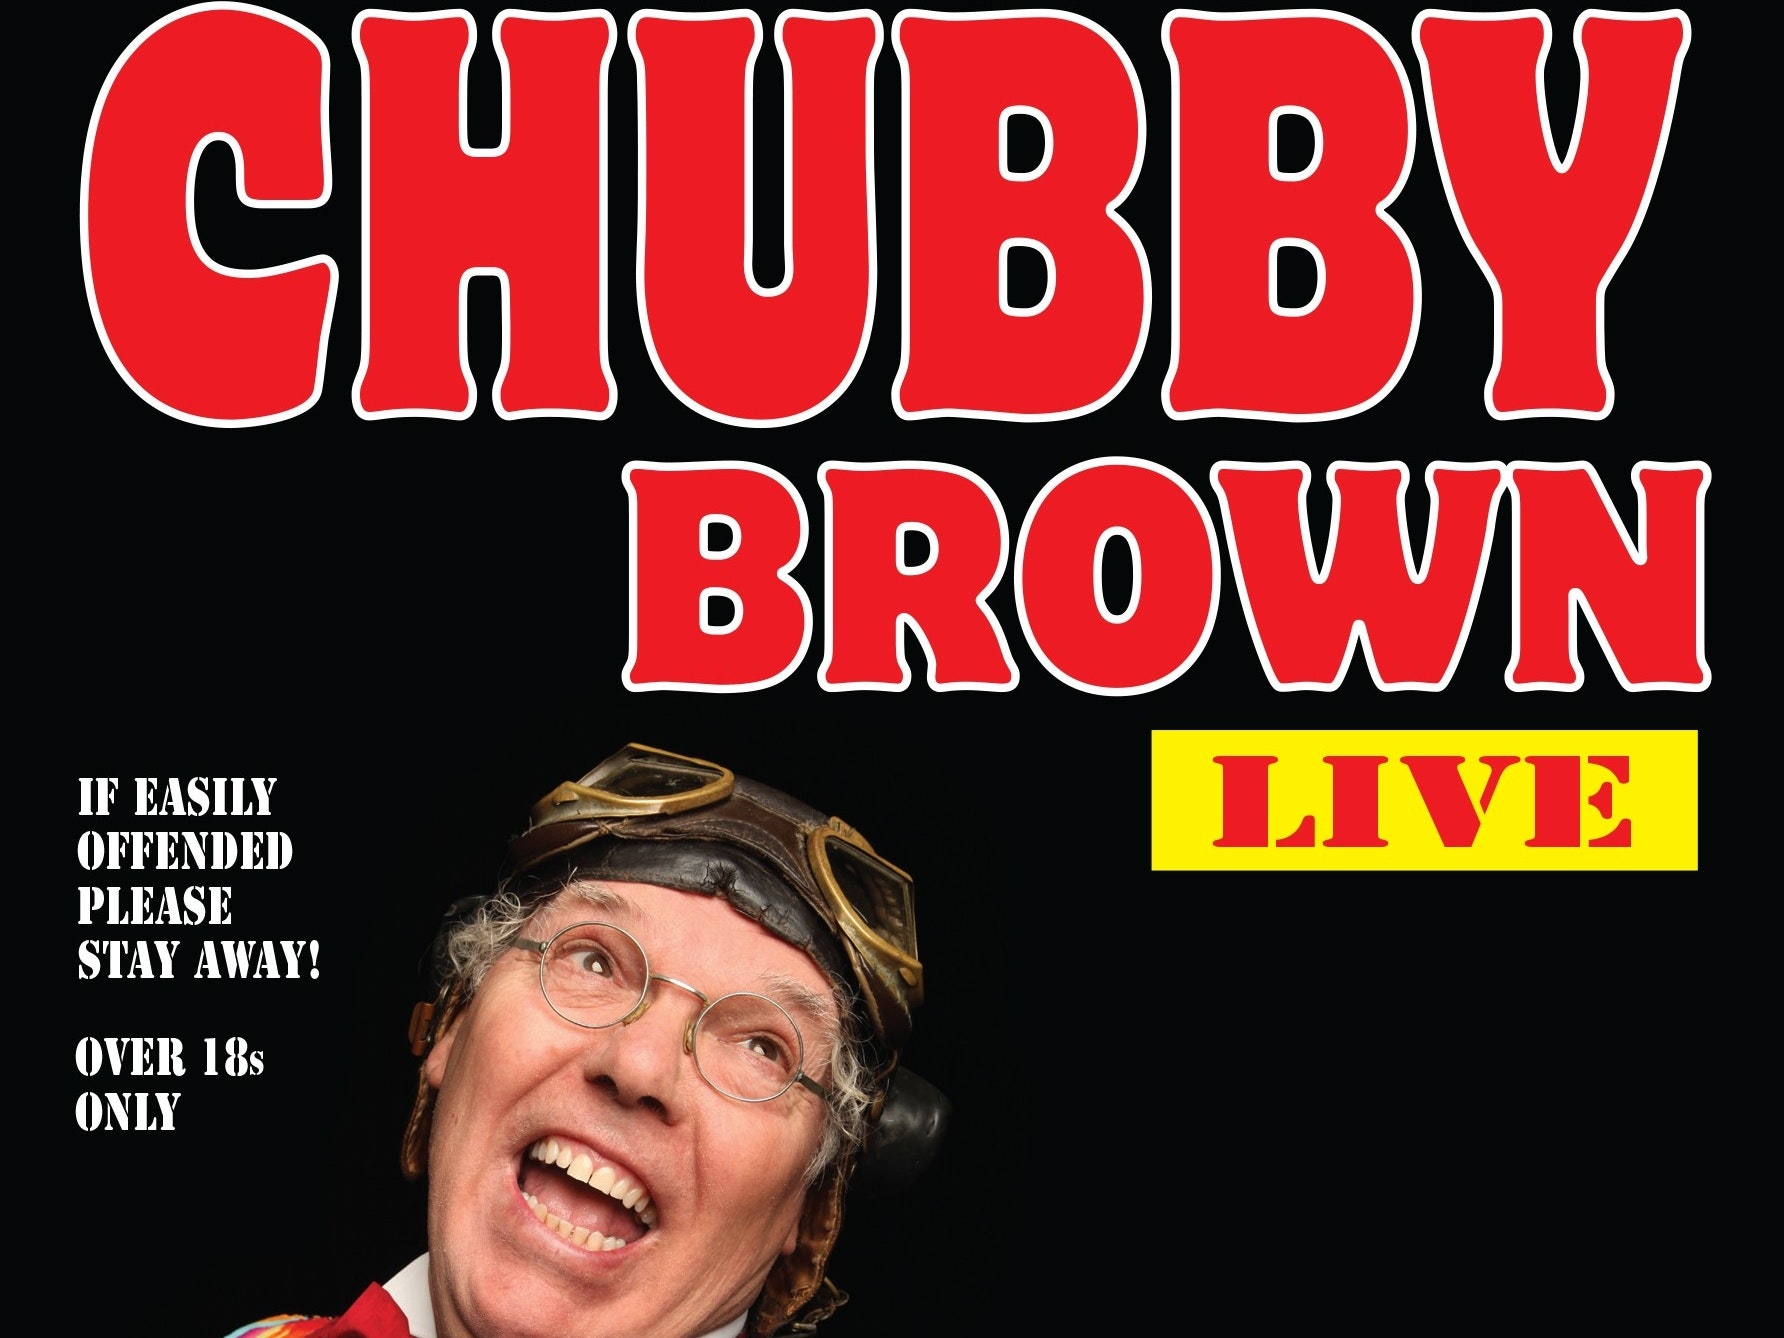 Chubby brown homepage